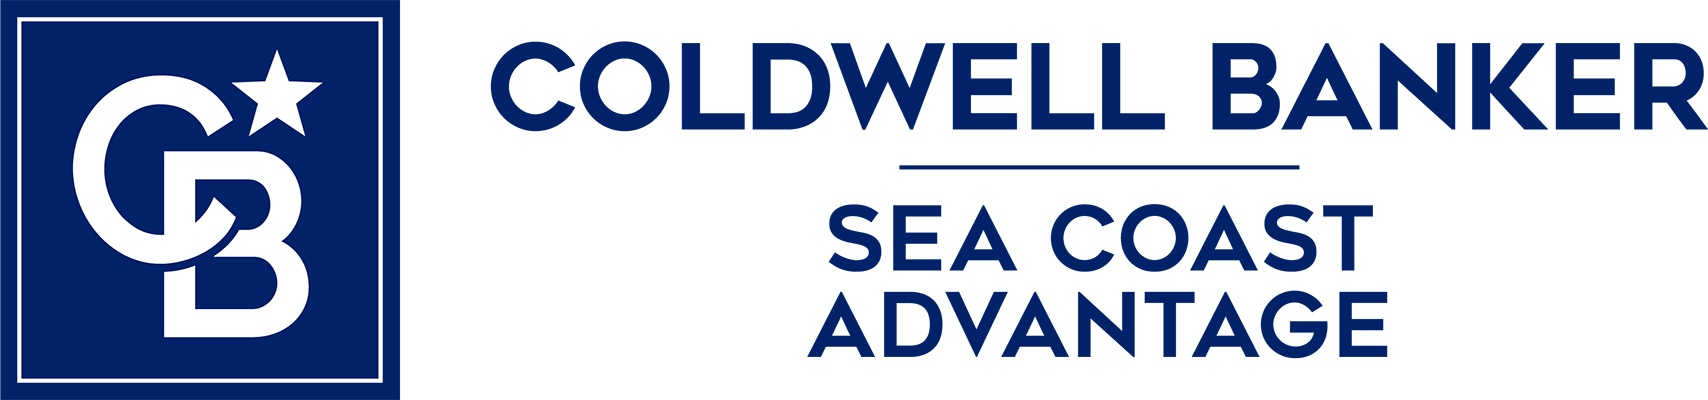 Terri Lawrence - Coldwell Banker Sea Coast Advantage Realty